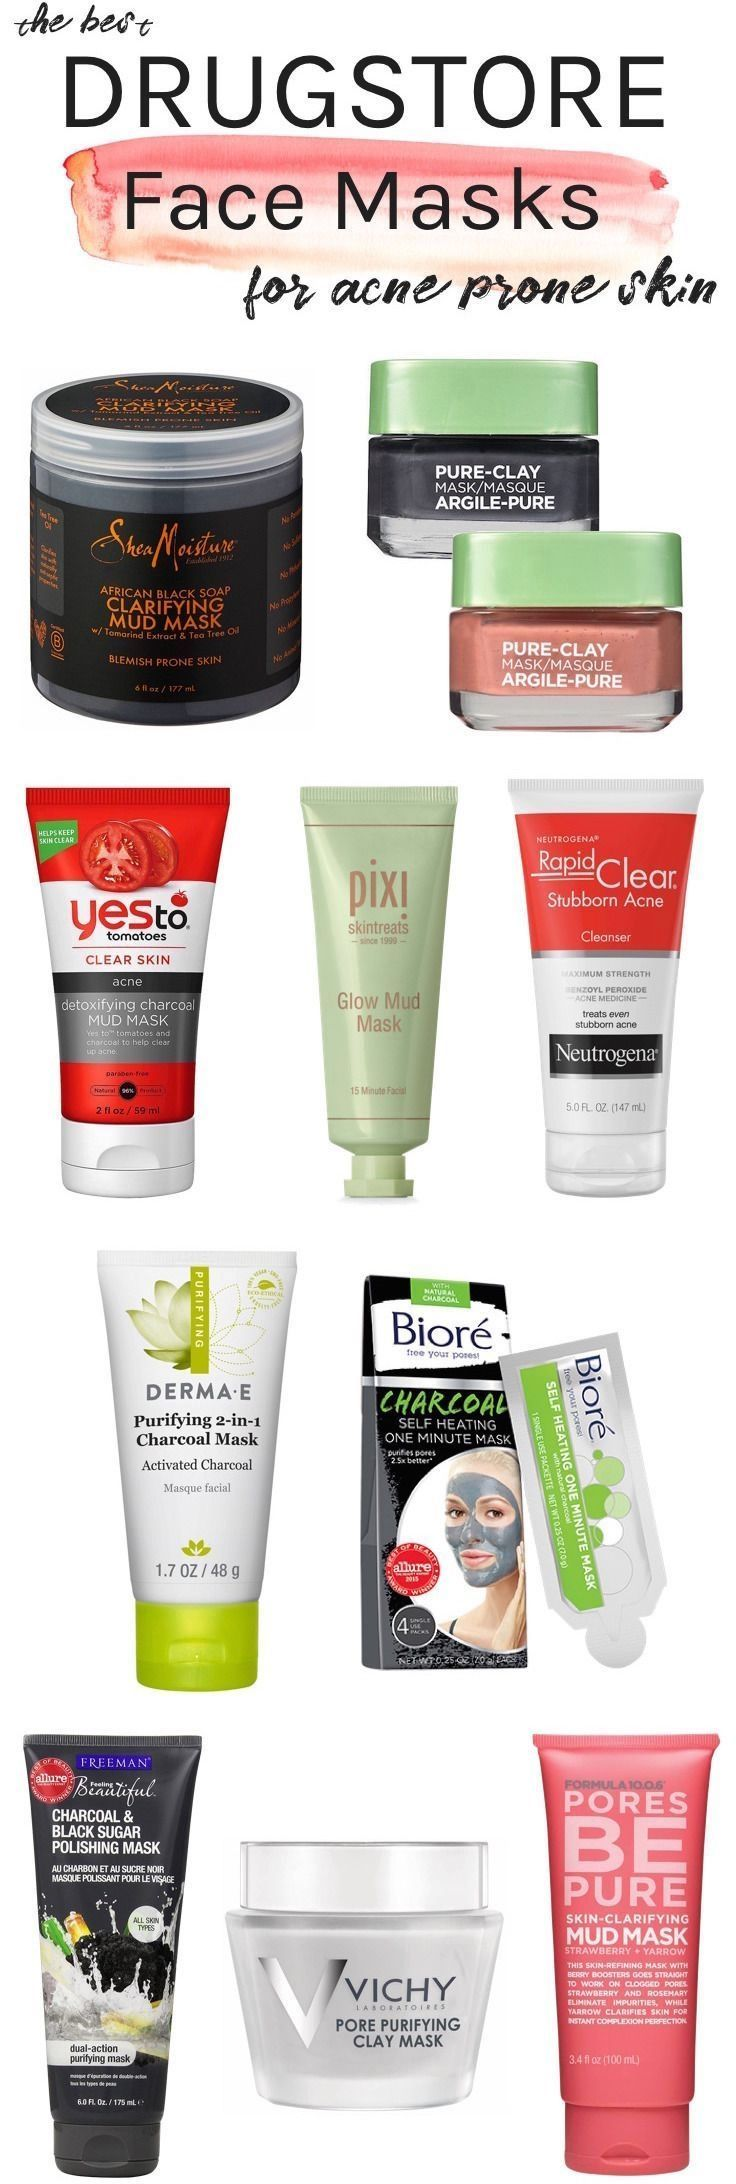 best skin care u health images on pinterest beauty products